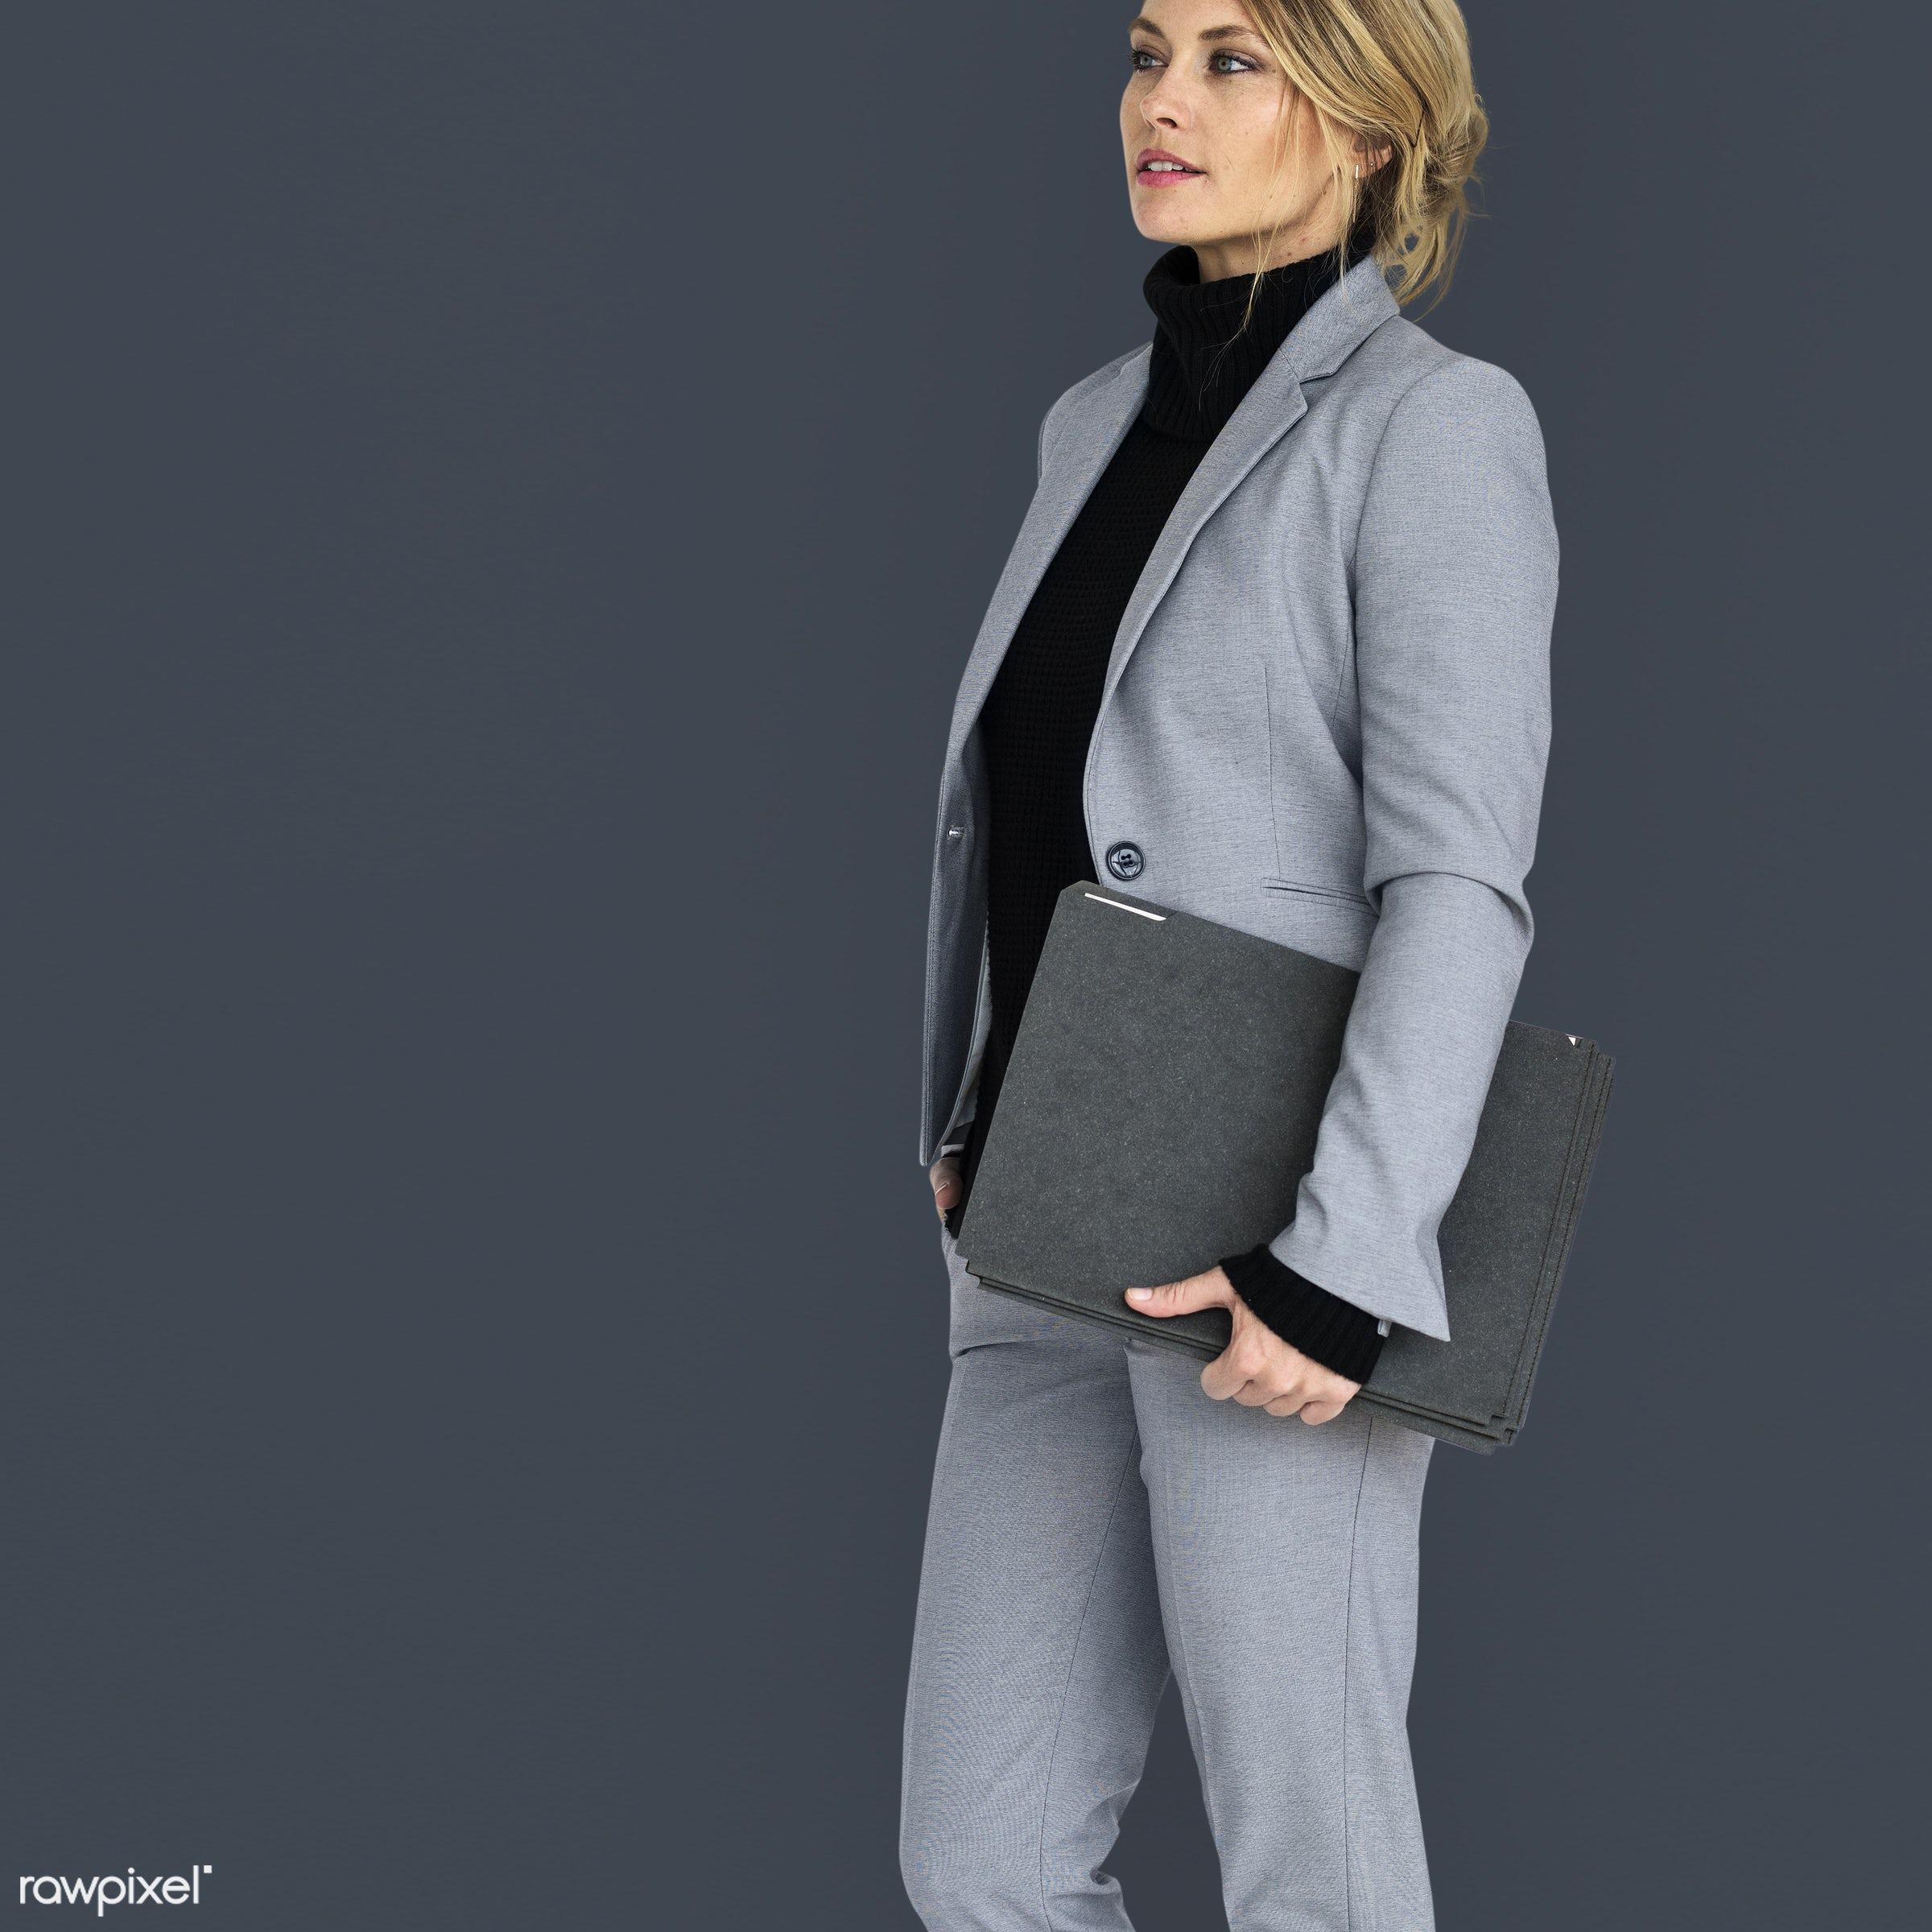 expression, studio, person, business wear, holding, people, caucasian, girl, woman, happy, smile, positive, smiling, formal...